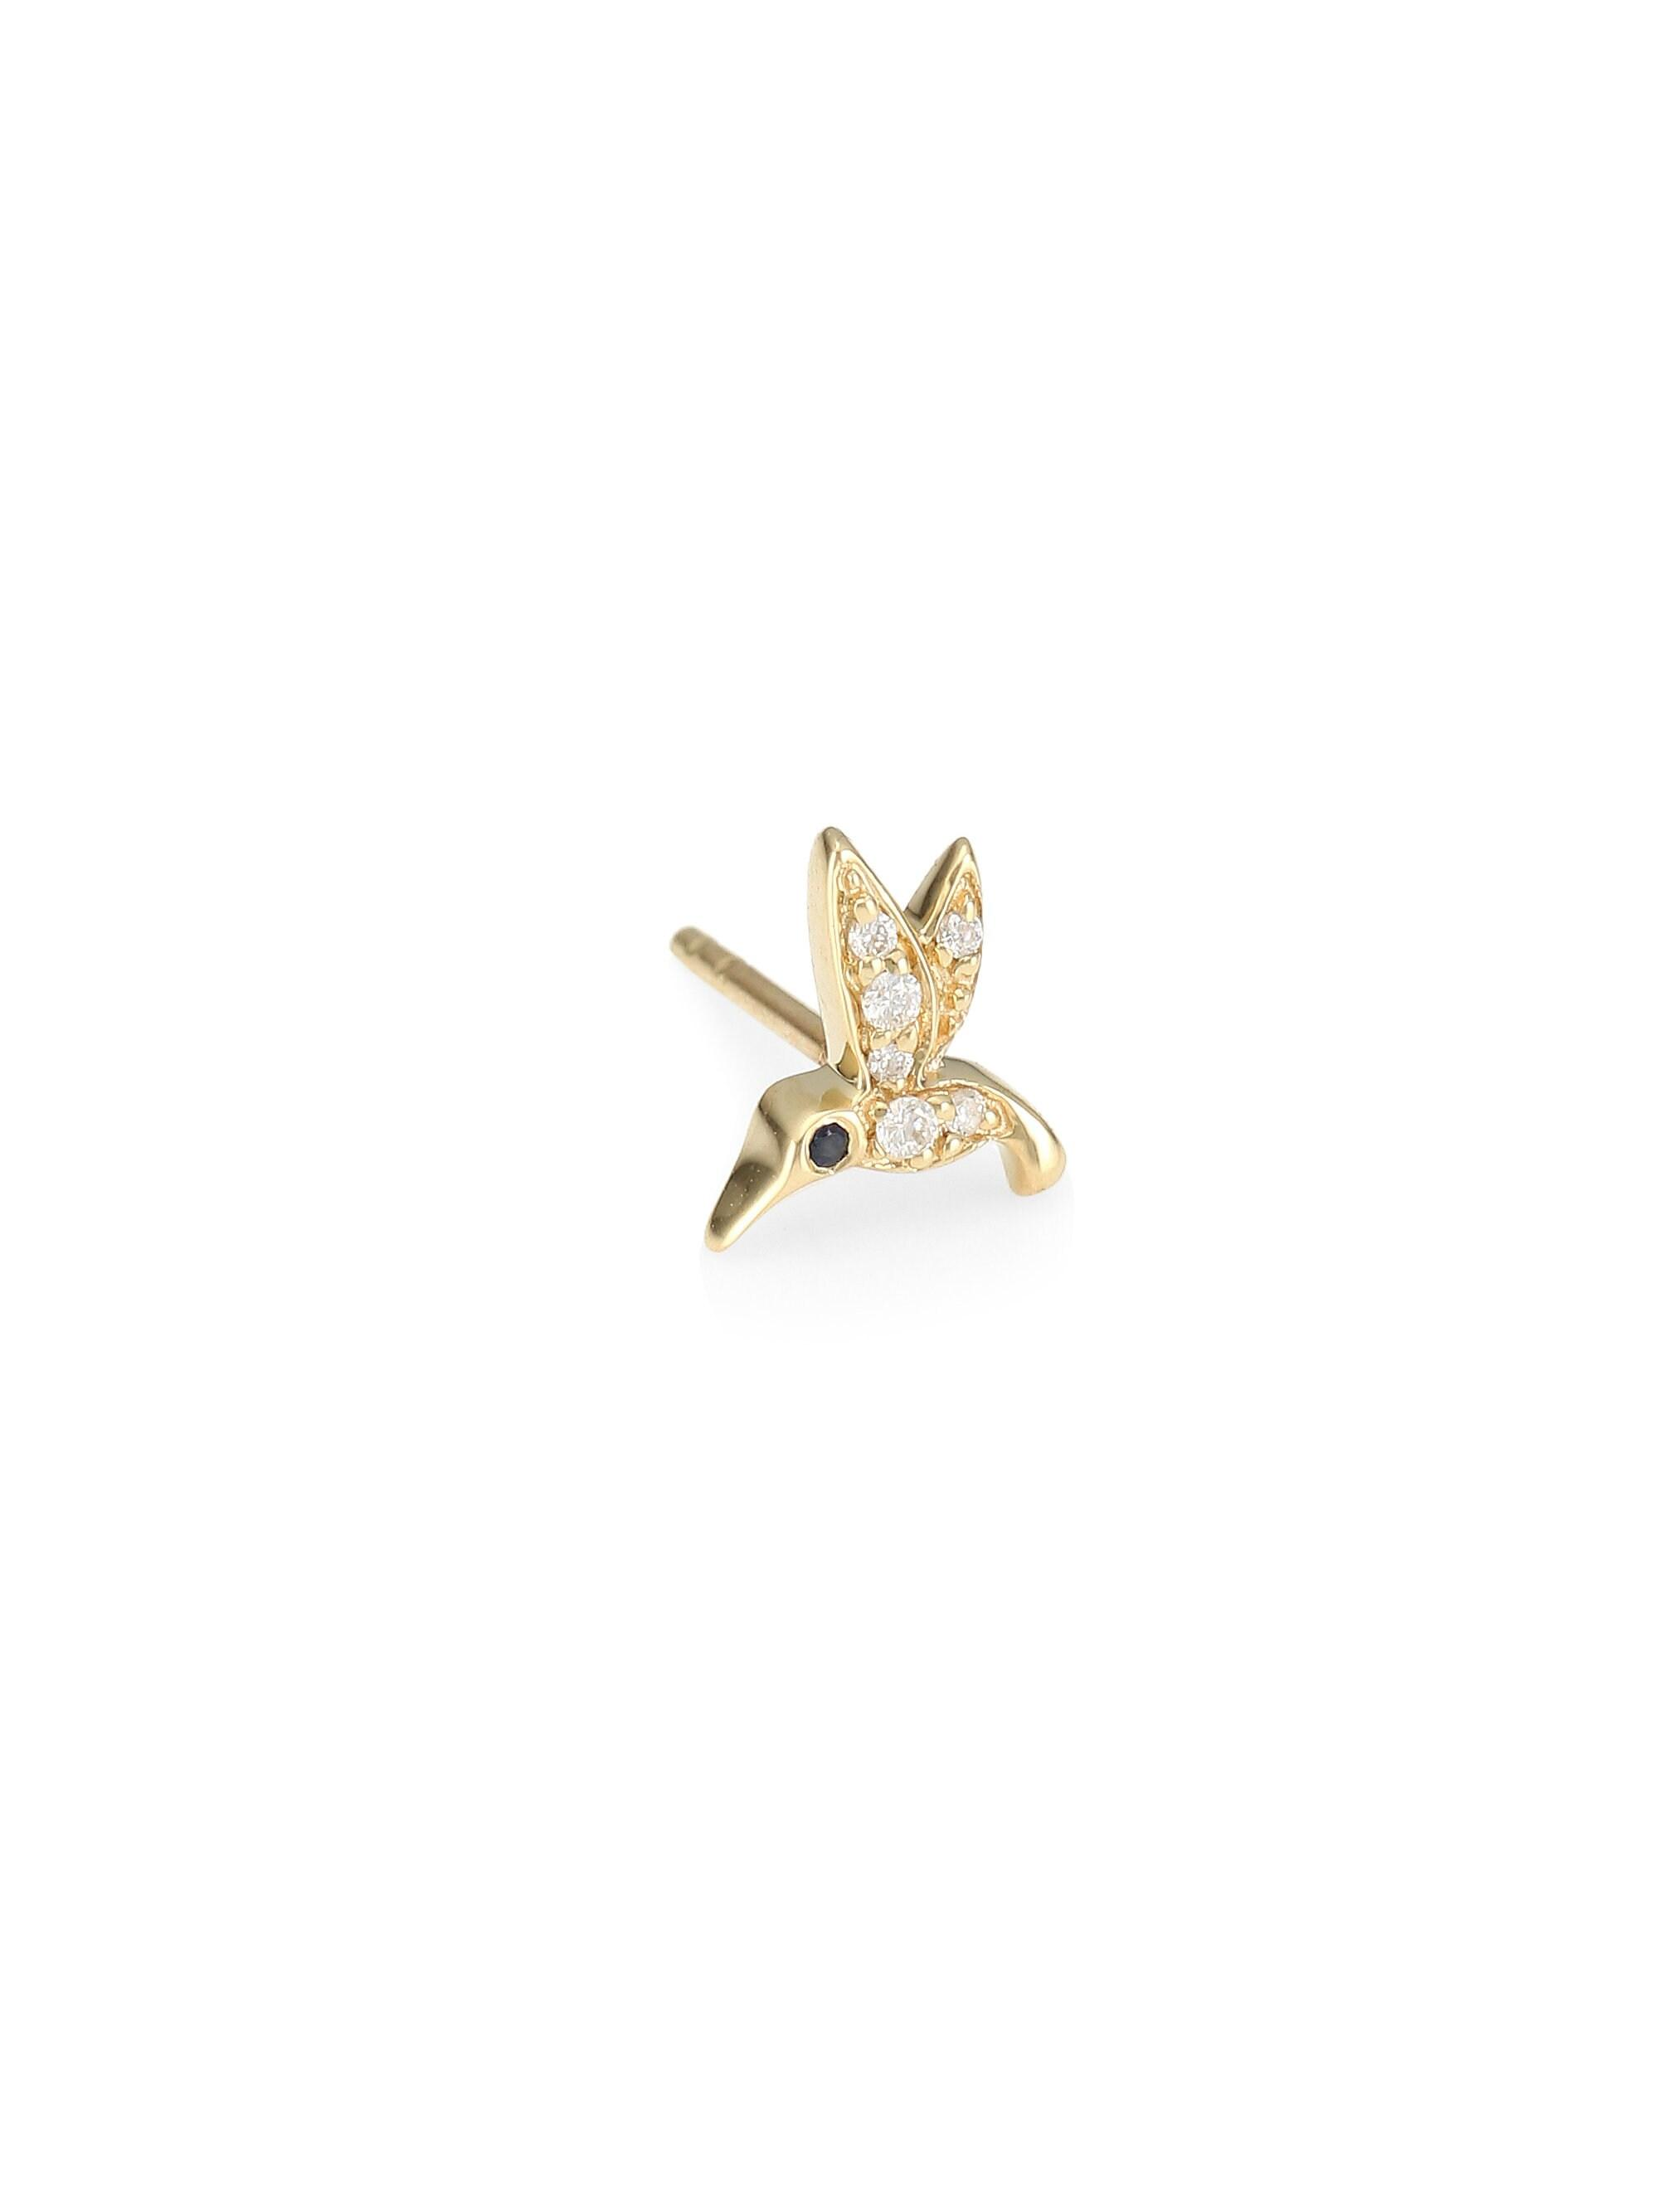 a4f70bd57 Sydney Evan - Metallic Tiny Hummingbird 14k Yellow Gold & Diamond Left Single  Stud Earring -. View fullscreen